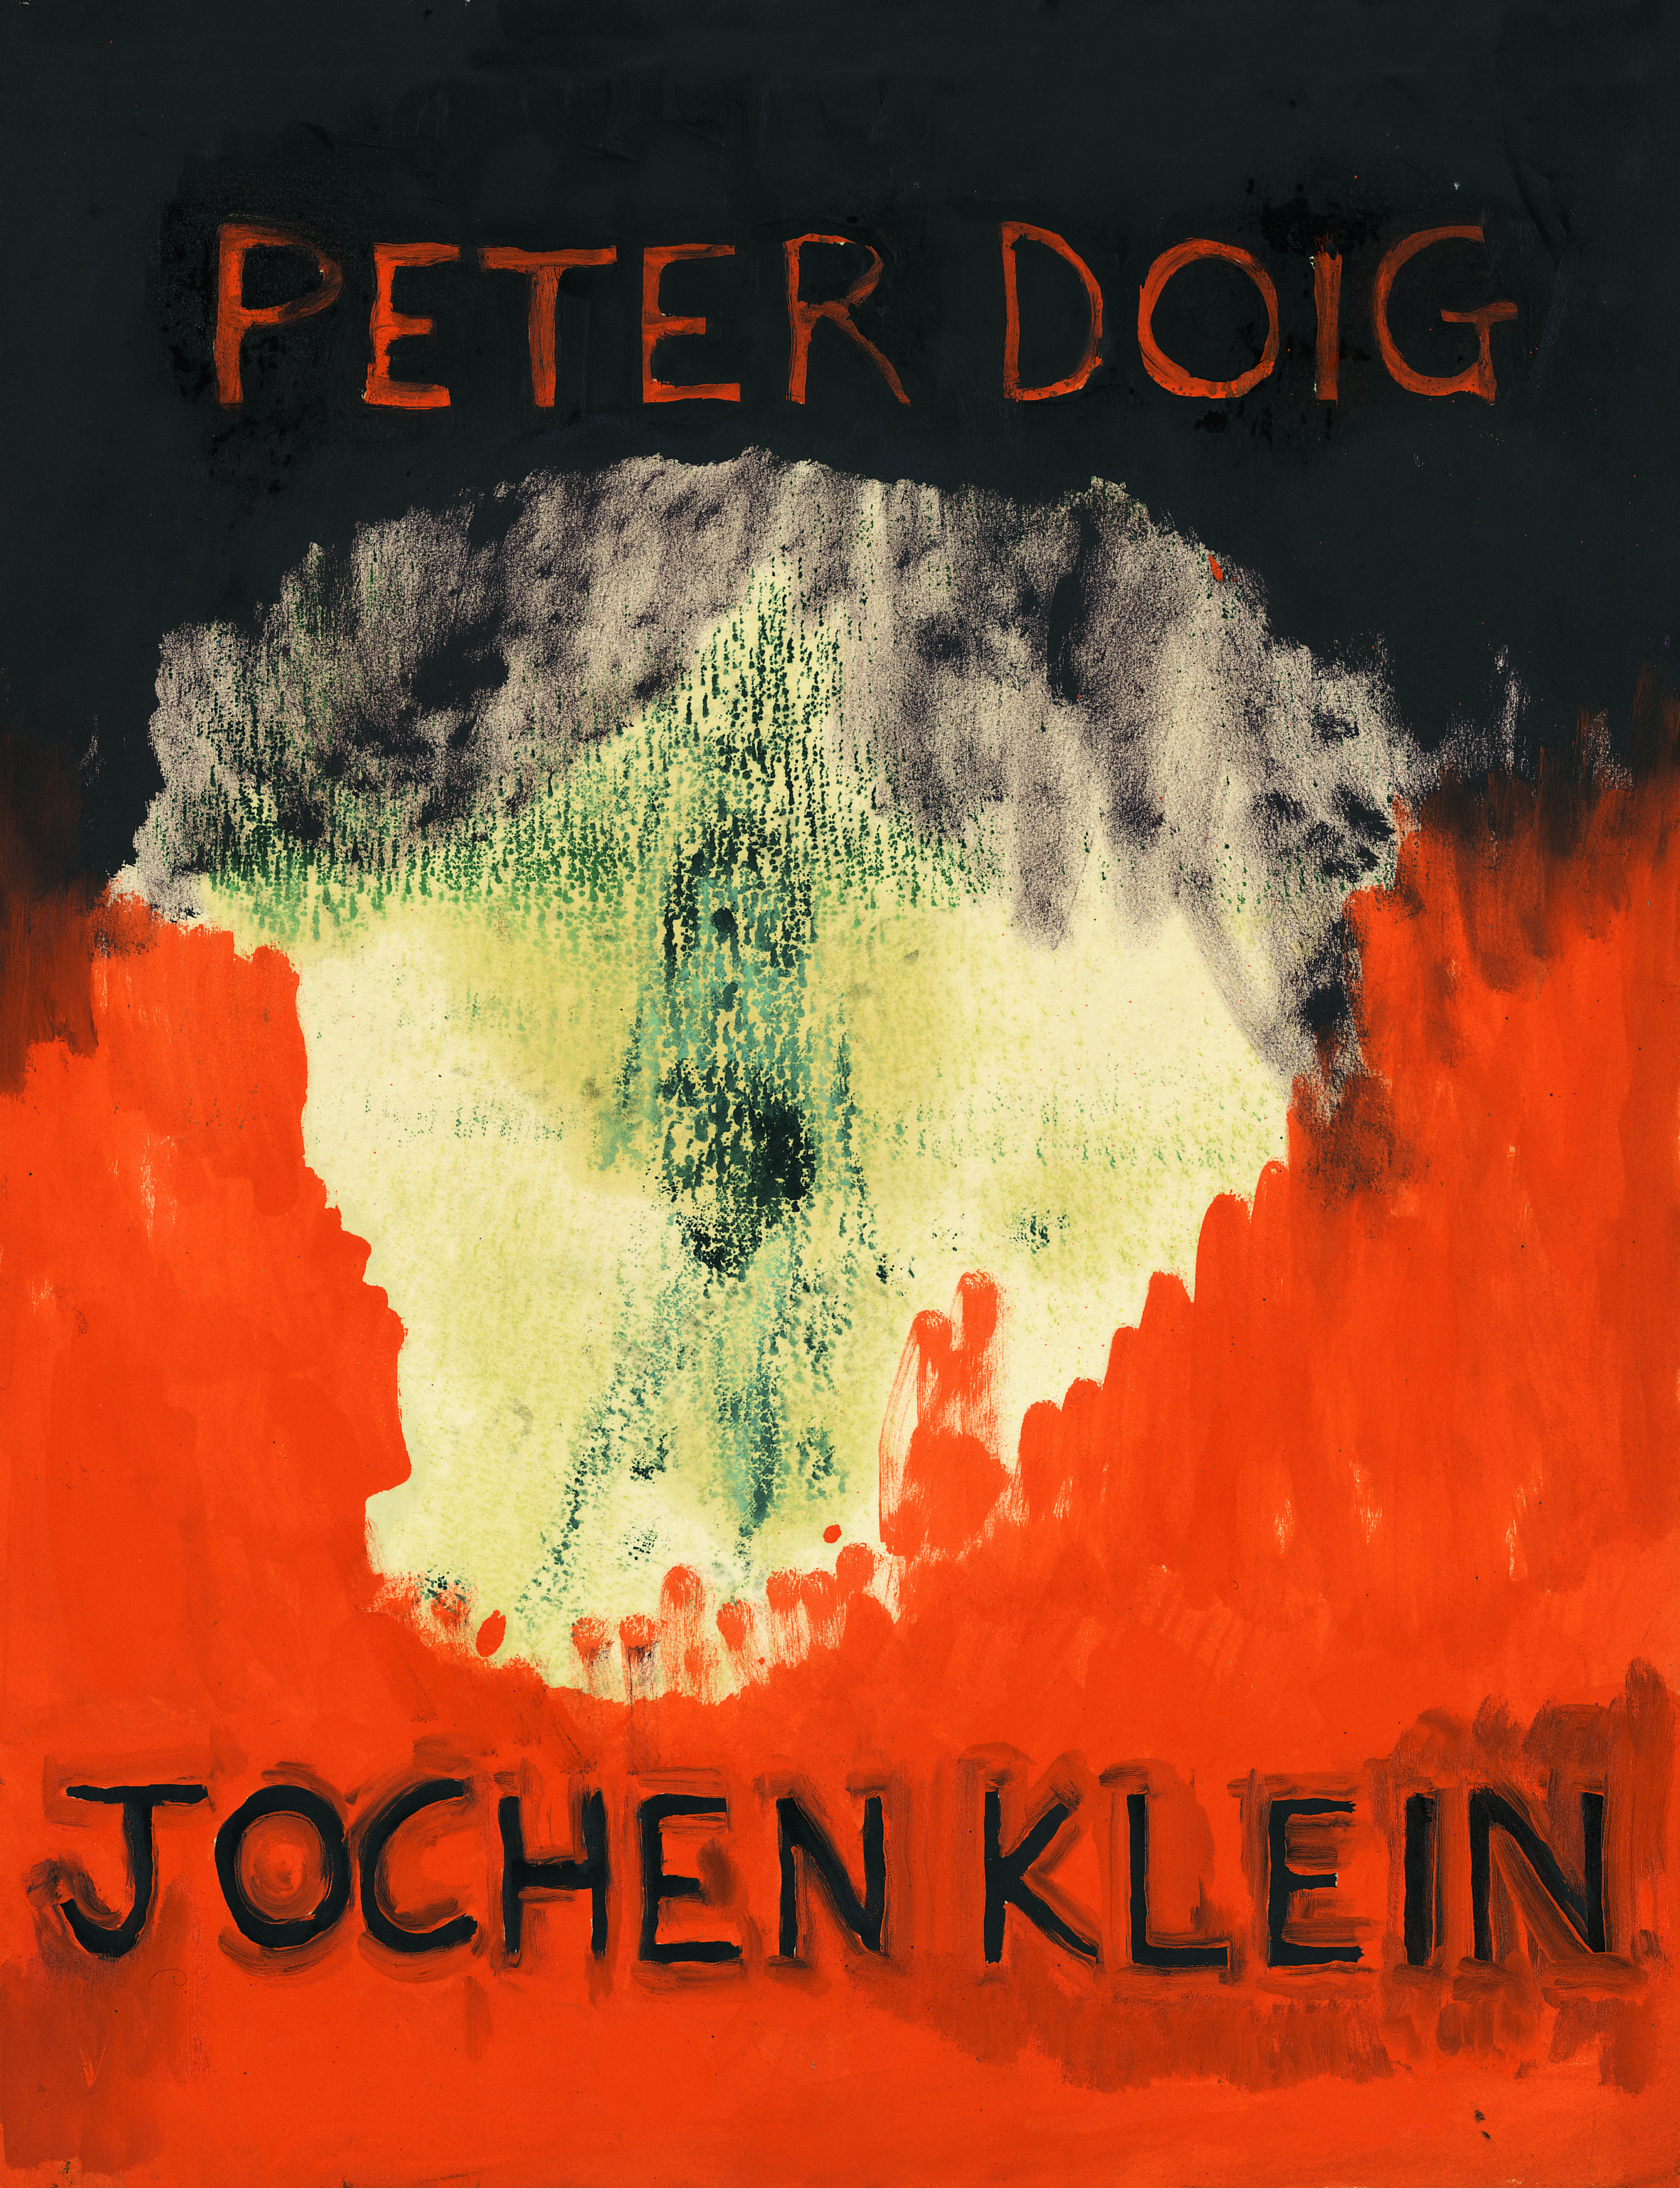 Peter Doig/Jochen Klein – 2006, 56 pages, fully illustrated, Owrps, 24 x 18 cm Edition 800 Euro 24,- – This catalog documents the exhibition of Peter Doig and Jochen Klein at our gallery in December 2004 and the new essay by Manfred Hermes in German and English.